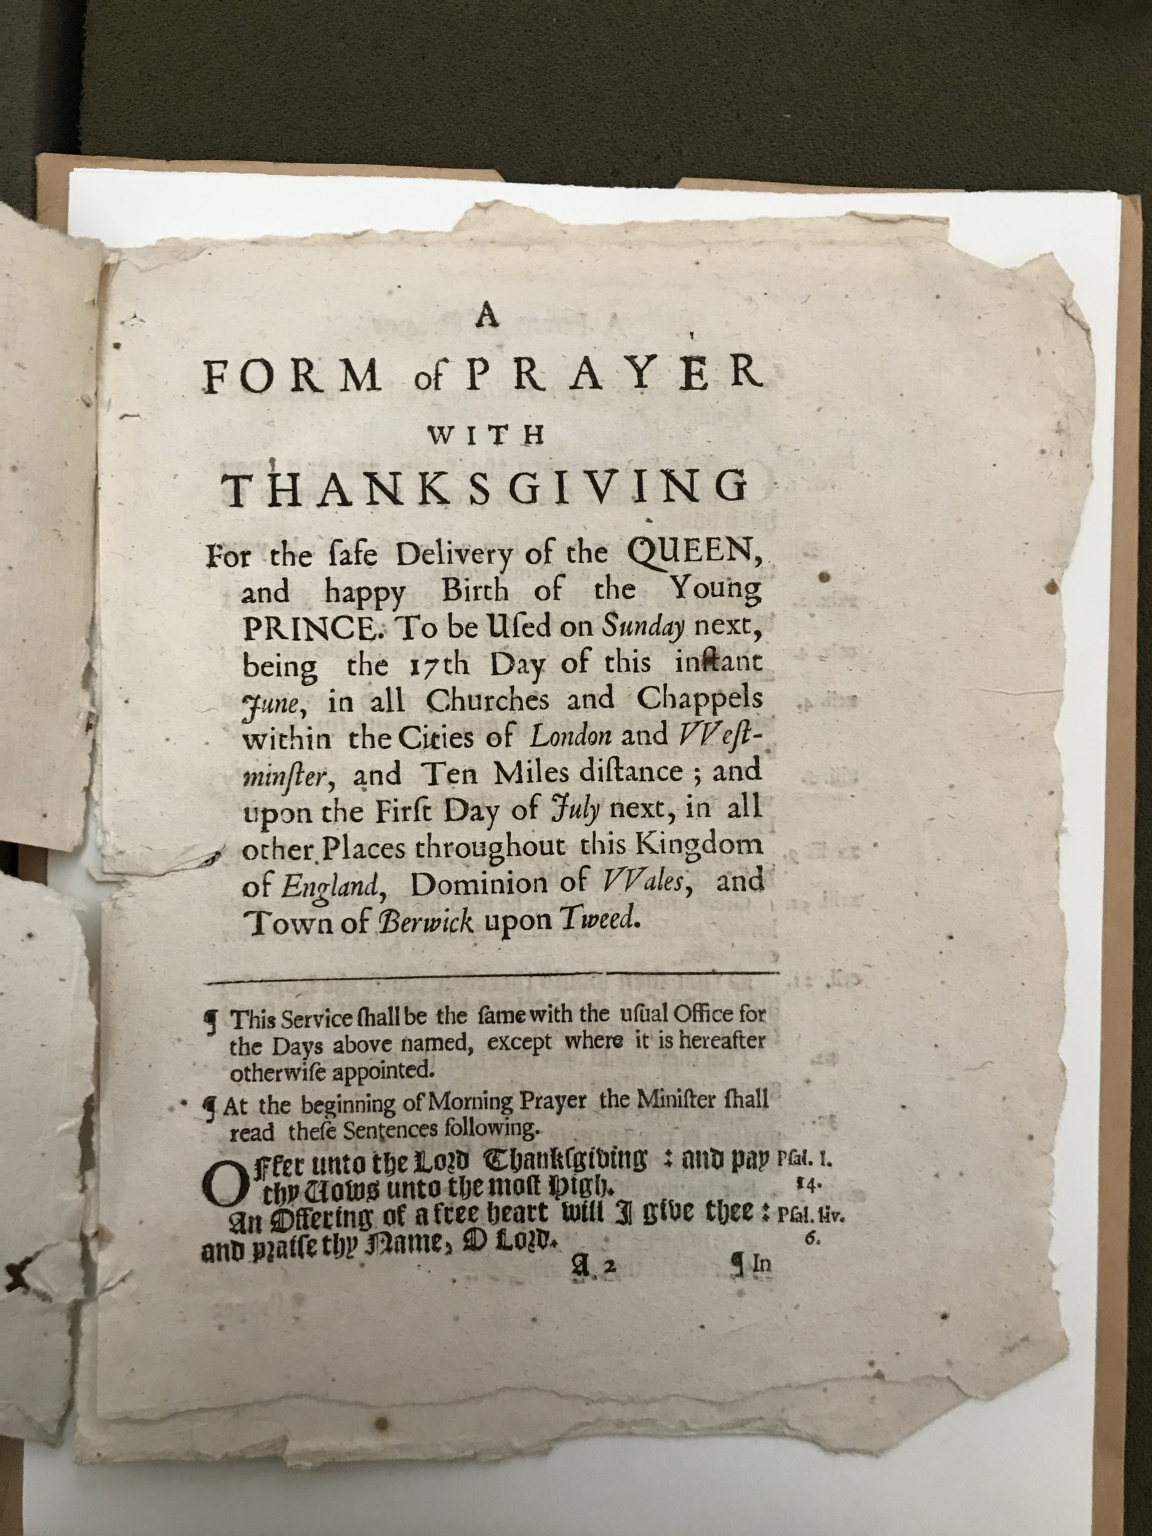 A form of prayer with thanksgiving for the safe delivery of the Queen, and happy birth of the young Prince. : To be used on Sunday next, being the seventeenth day of this instant June, in all churches and chappels, within the cities of London and Westminster, and ten miles distance; and upon the first day of July next, in all other places throughout this kingdom of England, dominion of Wales, and town of Berwick upon Tweed. By His Majesties special command.